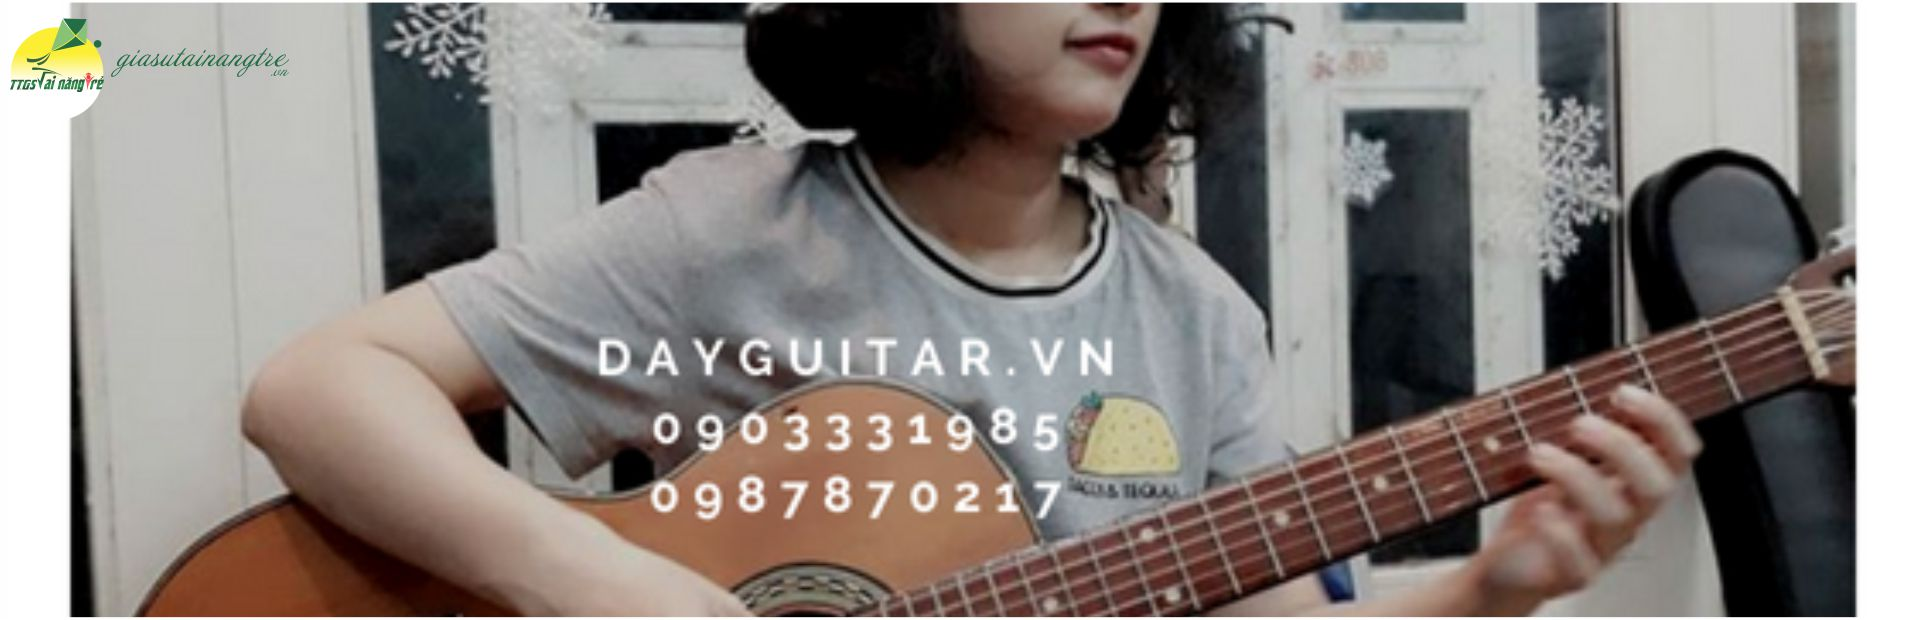 giao vien day guitar tot nghiep nhac vien